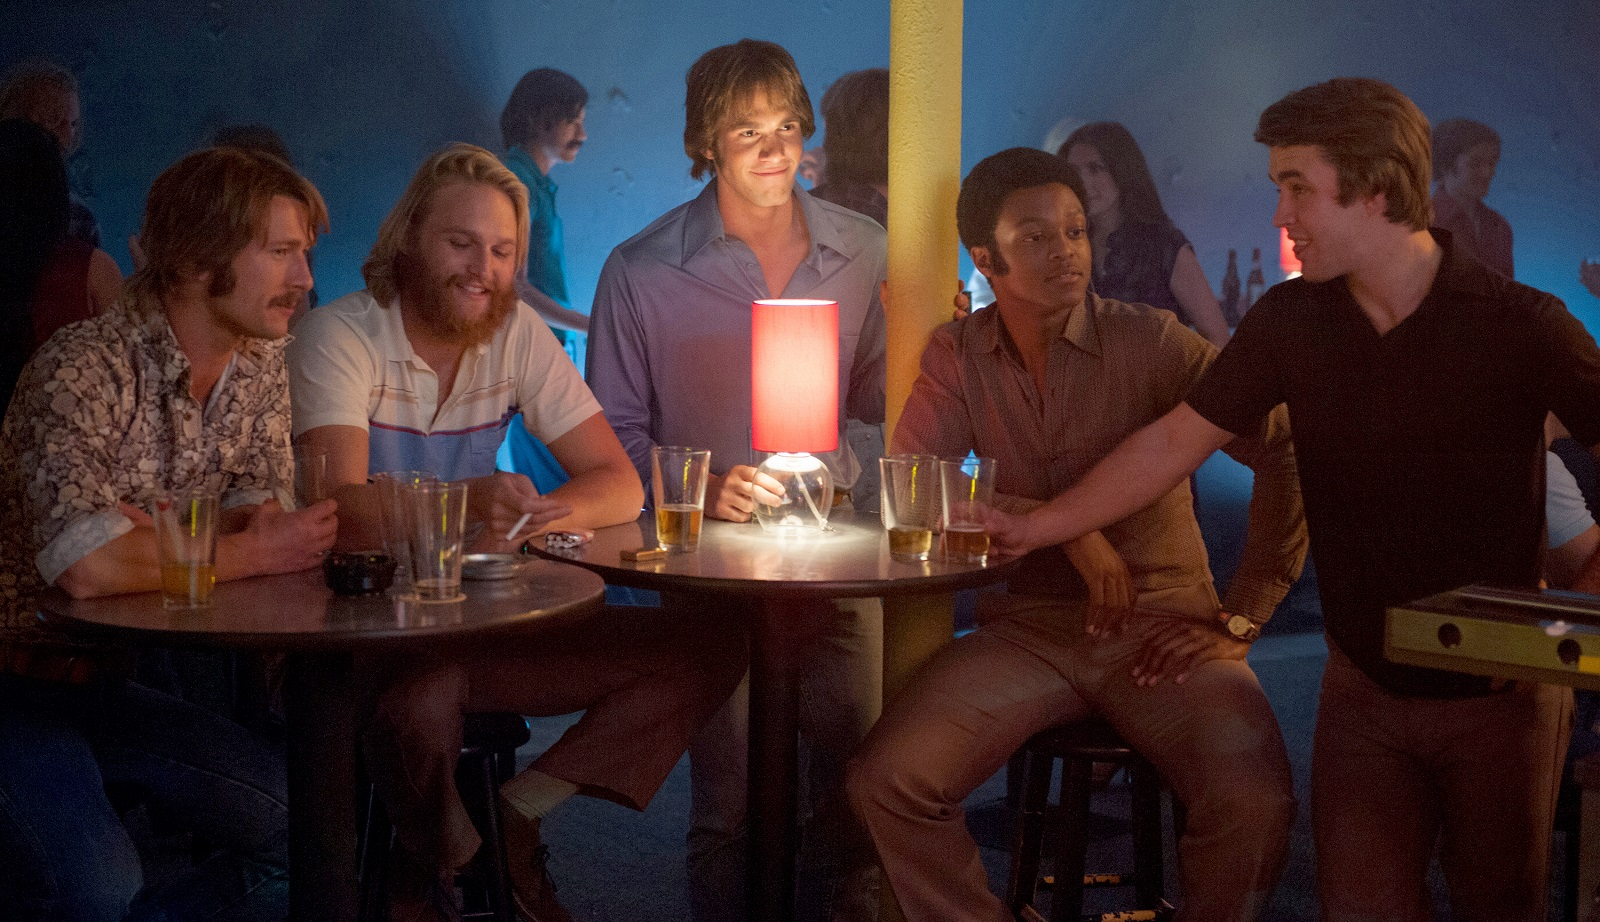 From left to right: Glen Powell plays Finnegan, Wyatt Russell plays Willoughby, Blake Jenner plays Jake, James Quinton Johnson plays Dale Douglas and Temple Baker plays Plummer in 'Everybody Wants Some.' (Van Redin, Paramount Pictures)